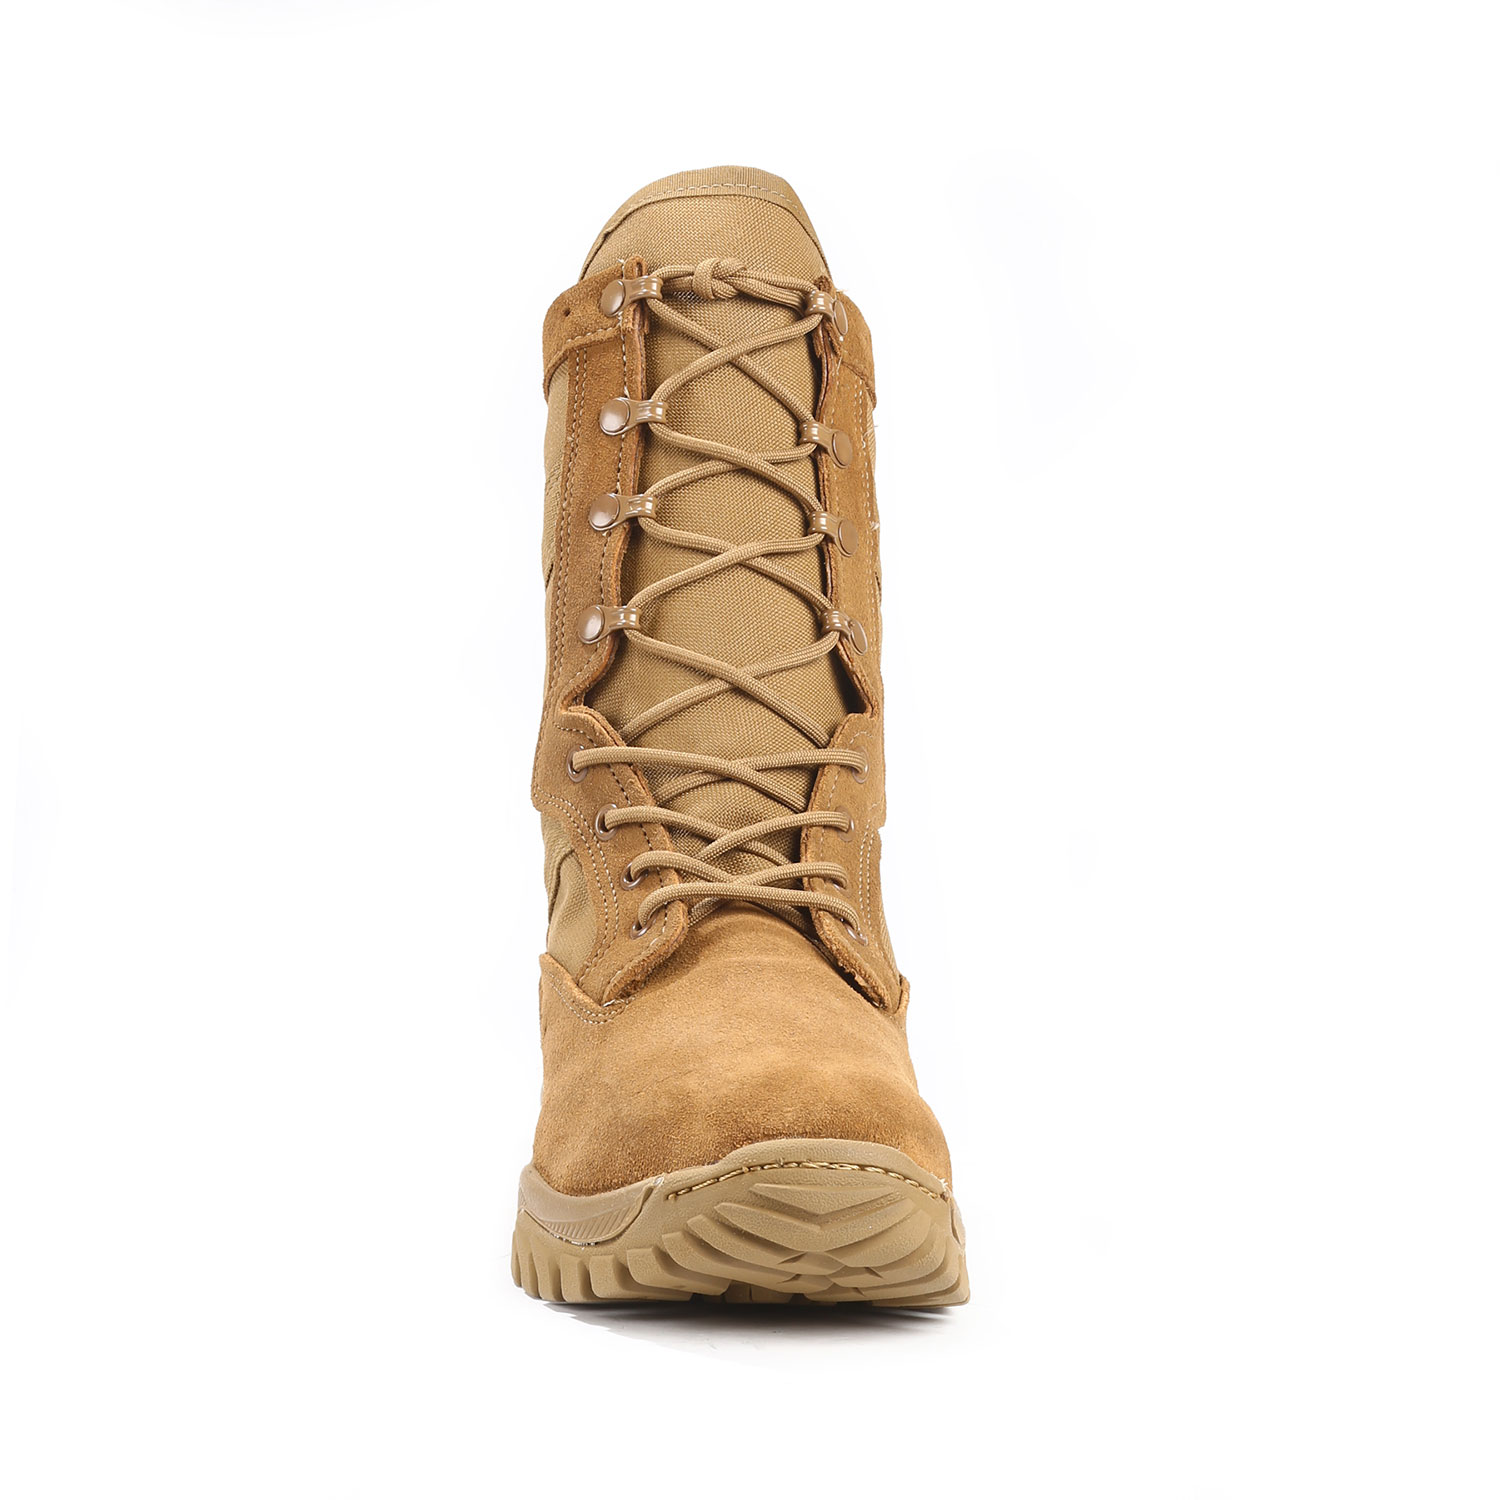 uk availability 8e027 dc236 Belleville One Xero Ultra-Light Assault Boots.